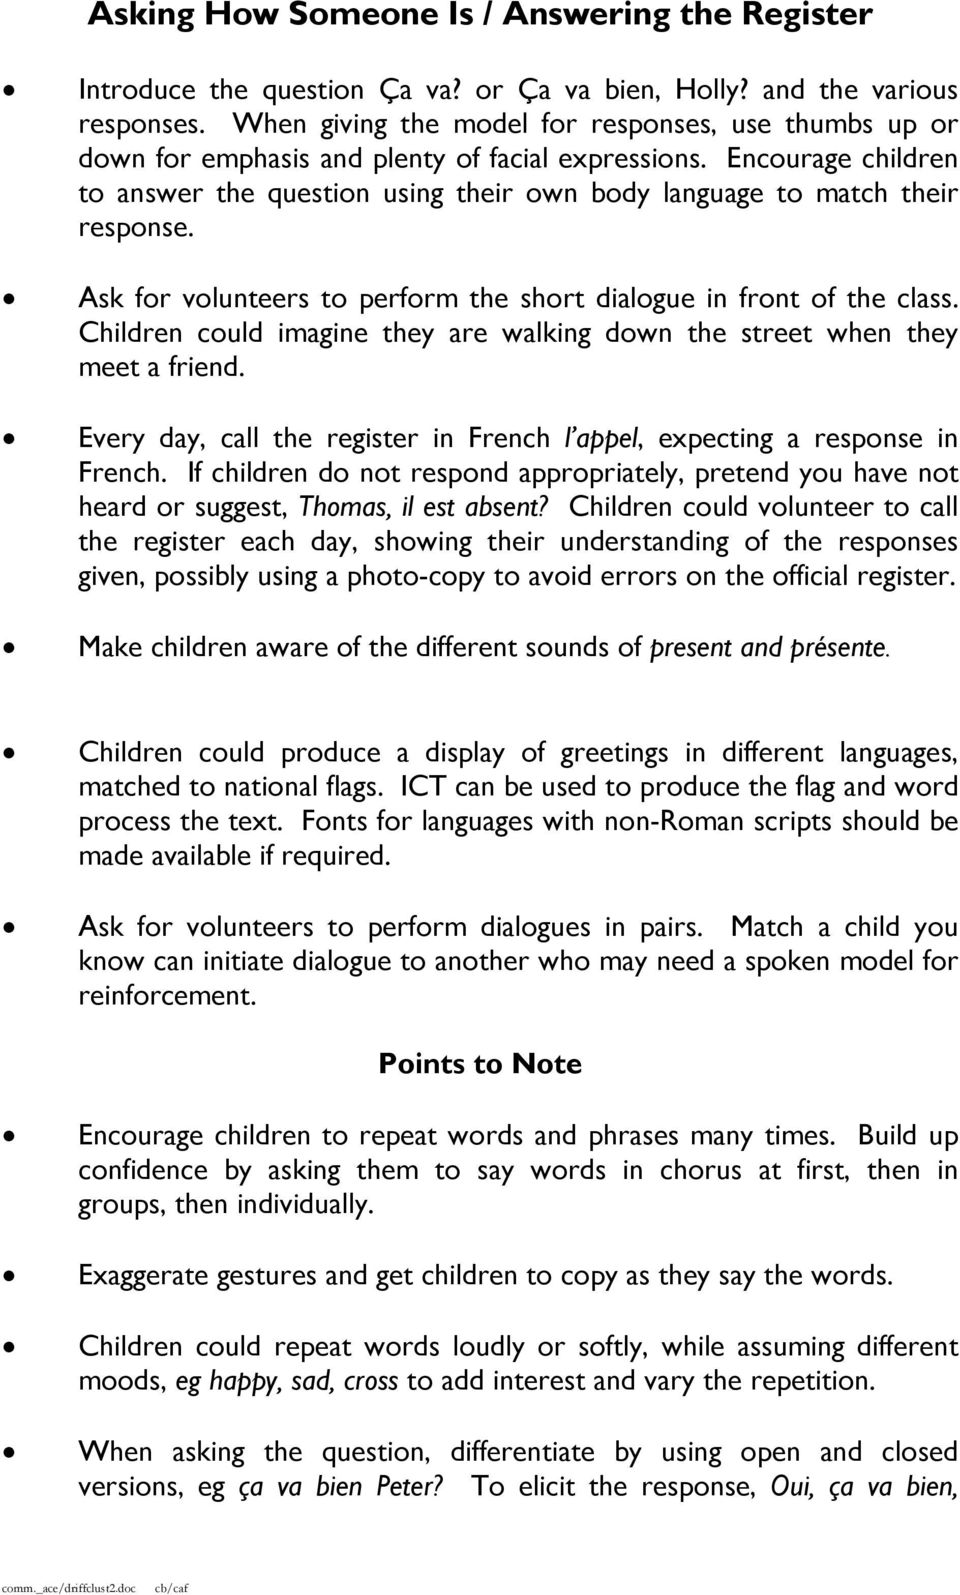 Driffield Cluster Primary Languages Key Stage 1 Franais And Espaol